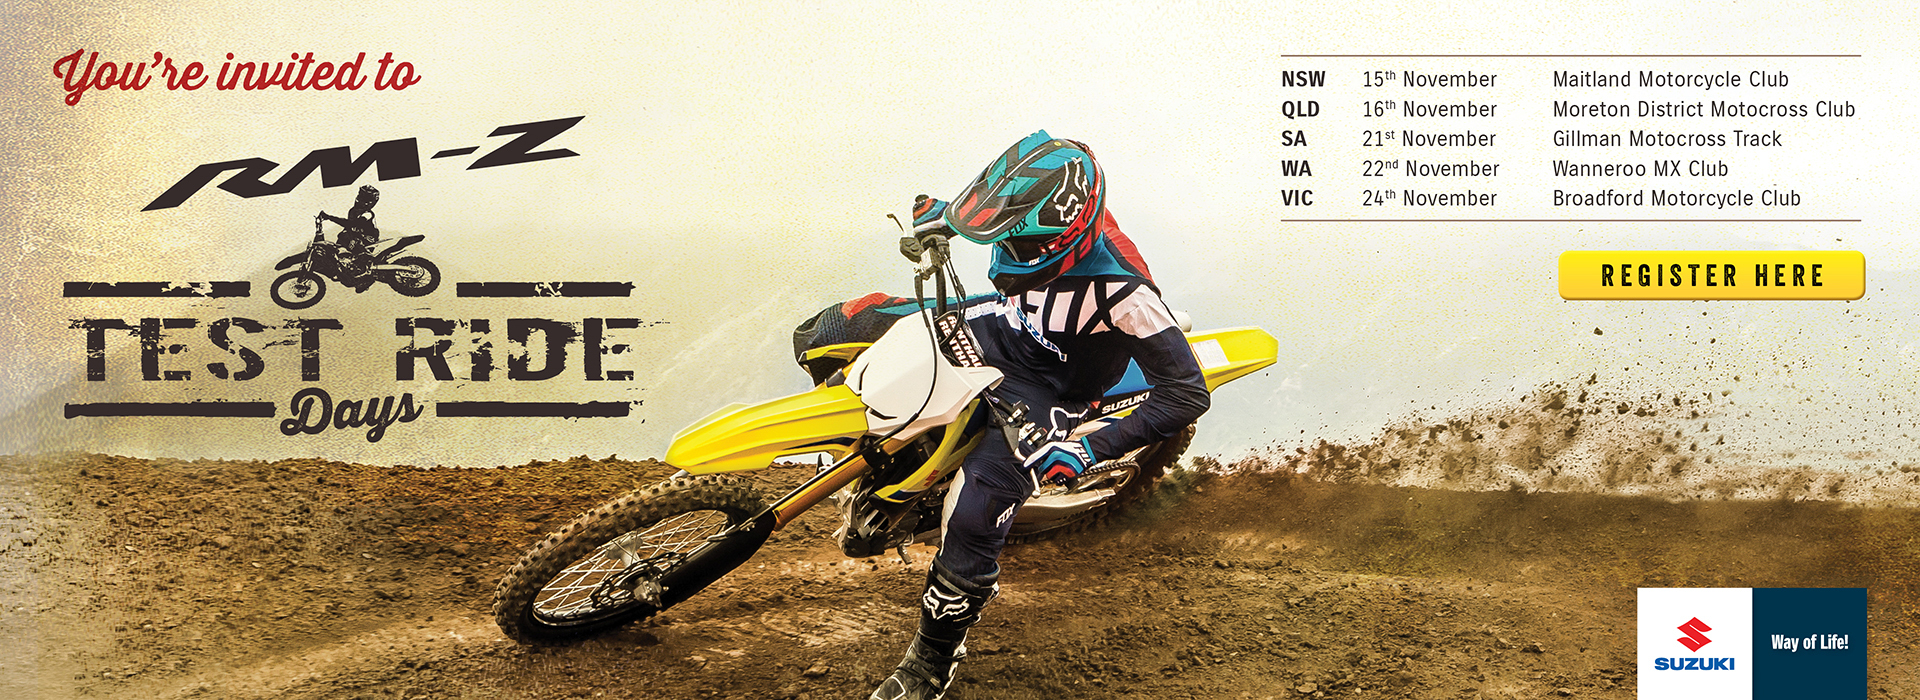 Suzuki RM-Z Ride Days artwork.